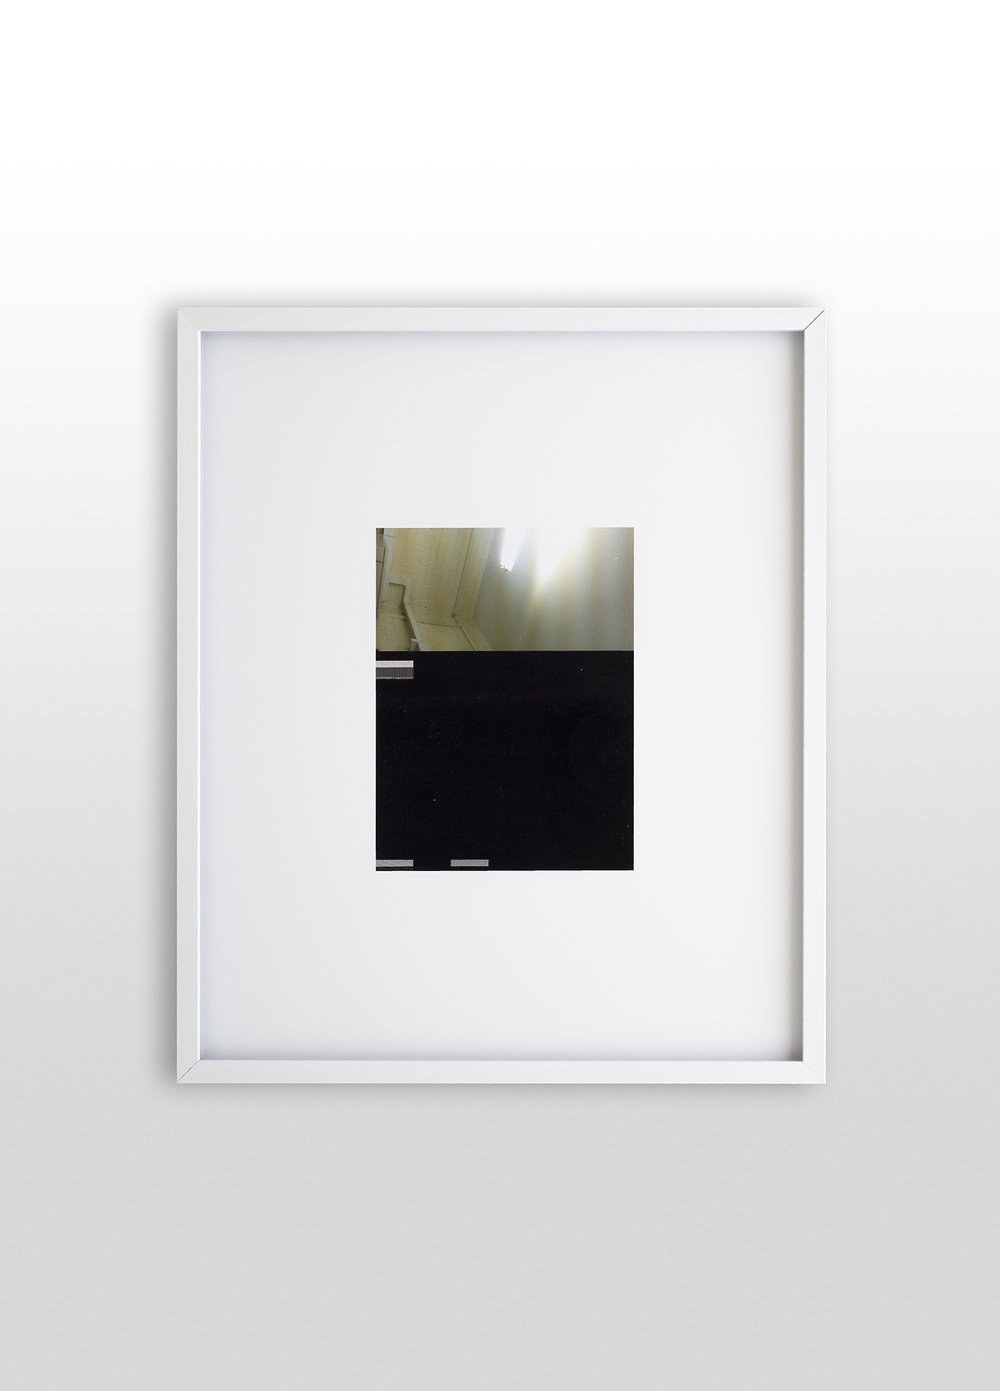 MG991 (fluorescent light), 2014